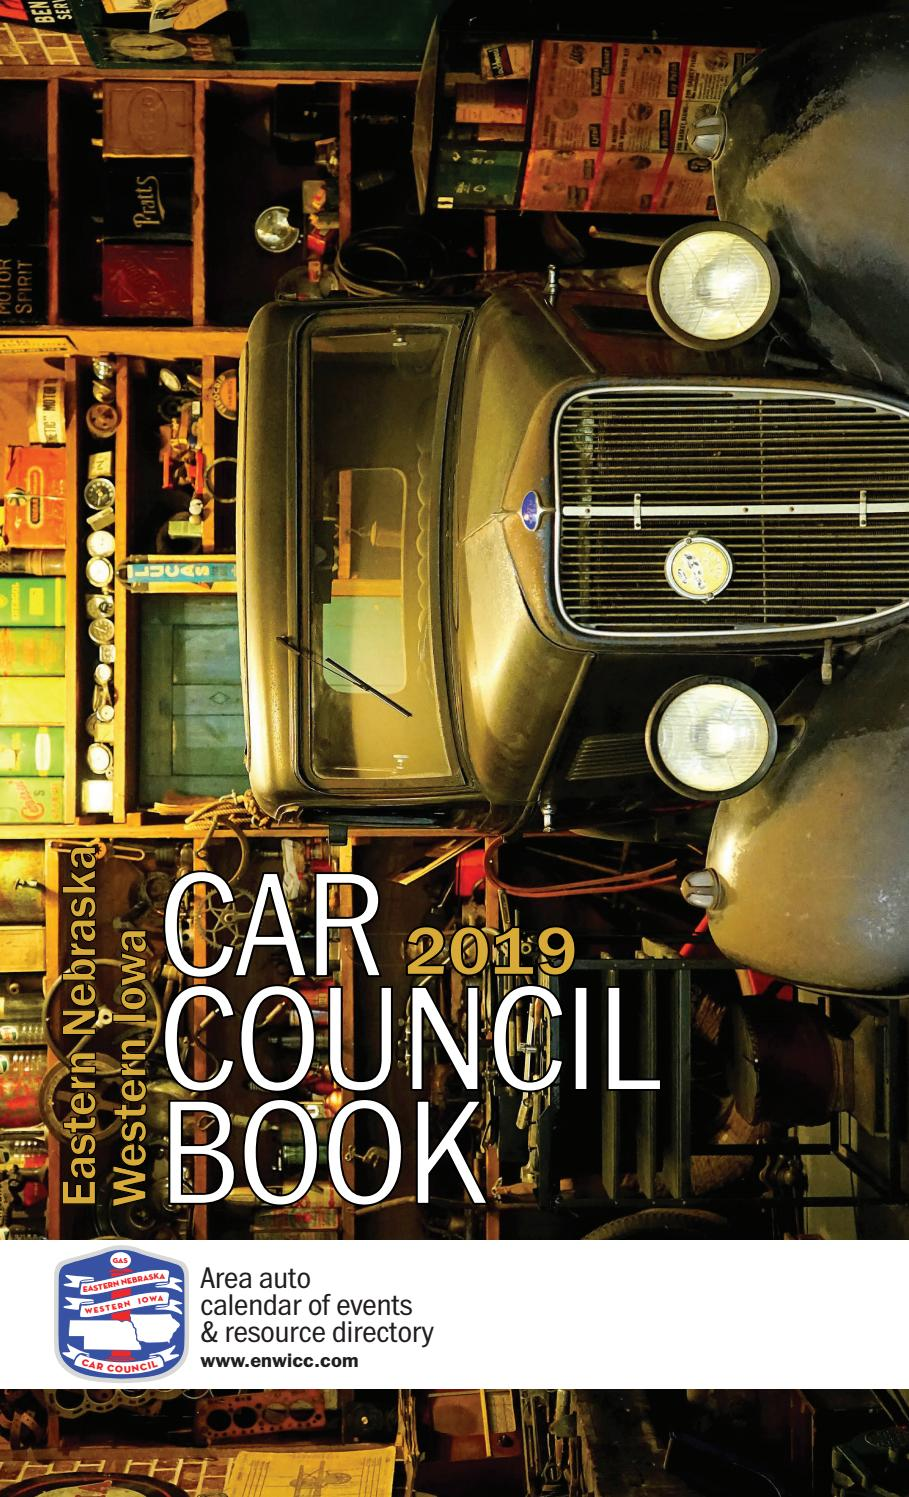 Eastern Nebraska/Western Iowa Car Council Book 2019 by Suburban Newspapers - Issuu